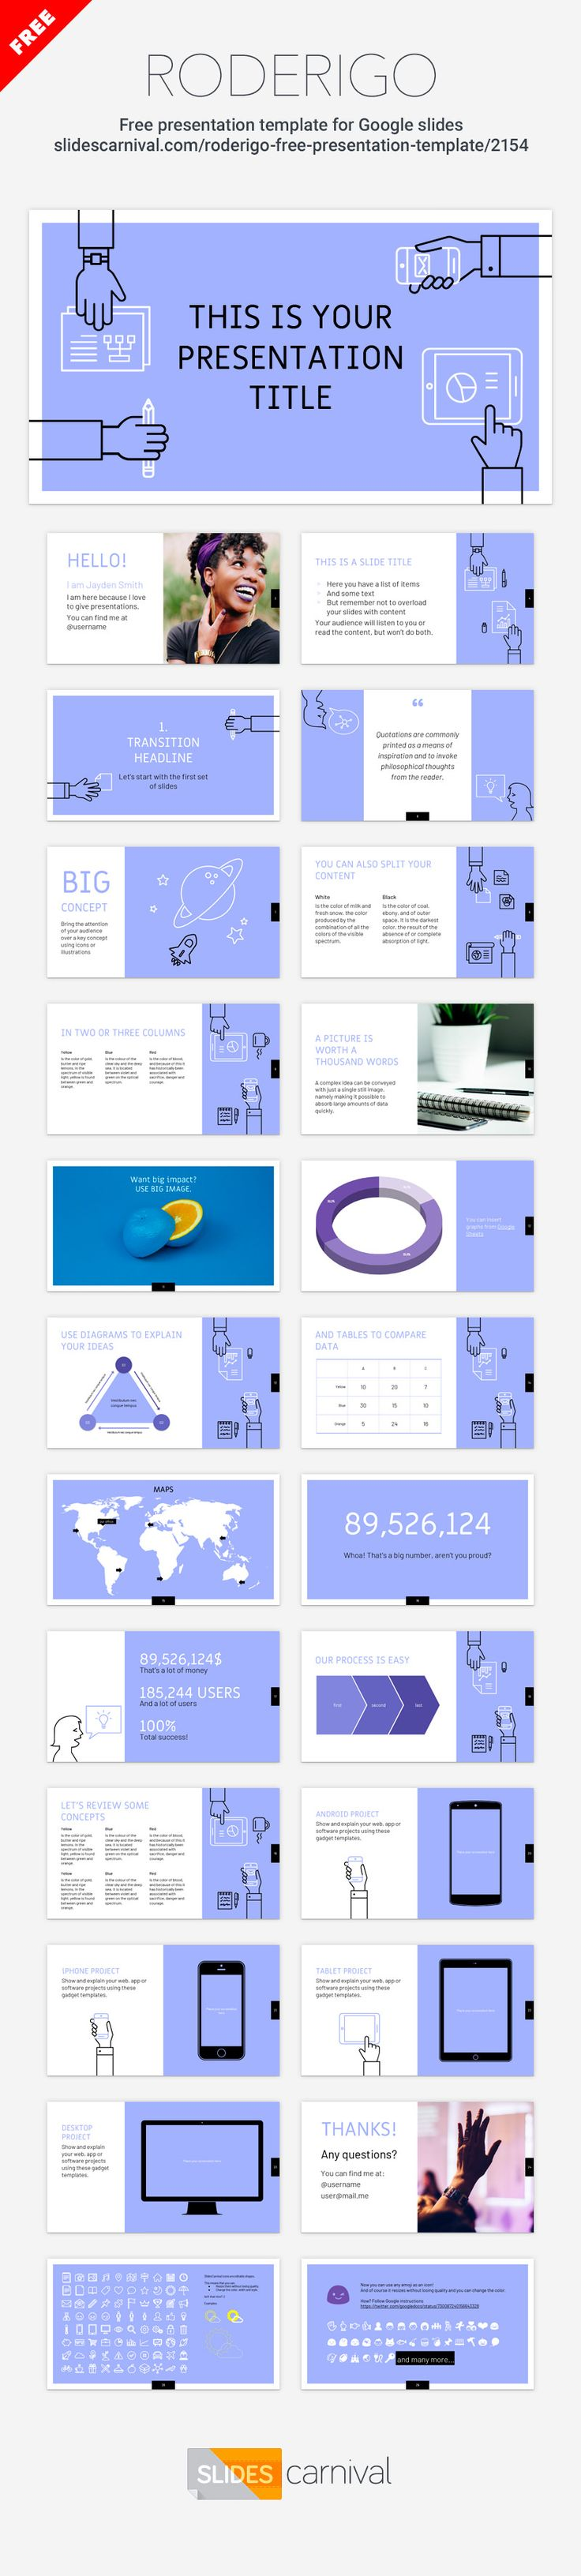 Design a presentation that will meet the latest design trends with this multipurpose free template. With illustrations that represent teamwork this theme will fit a keynote on business planning, your next marketing strategy or a new project proposal.